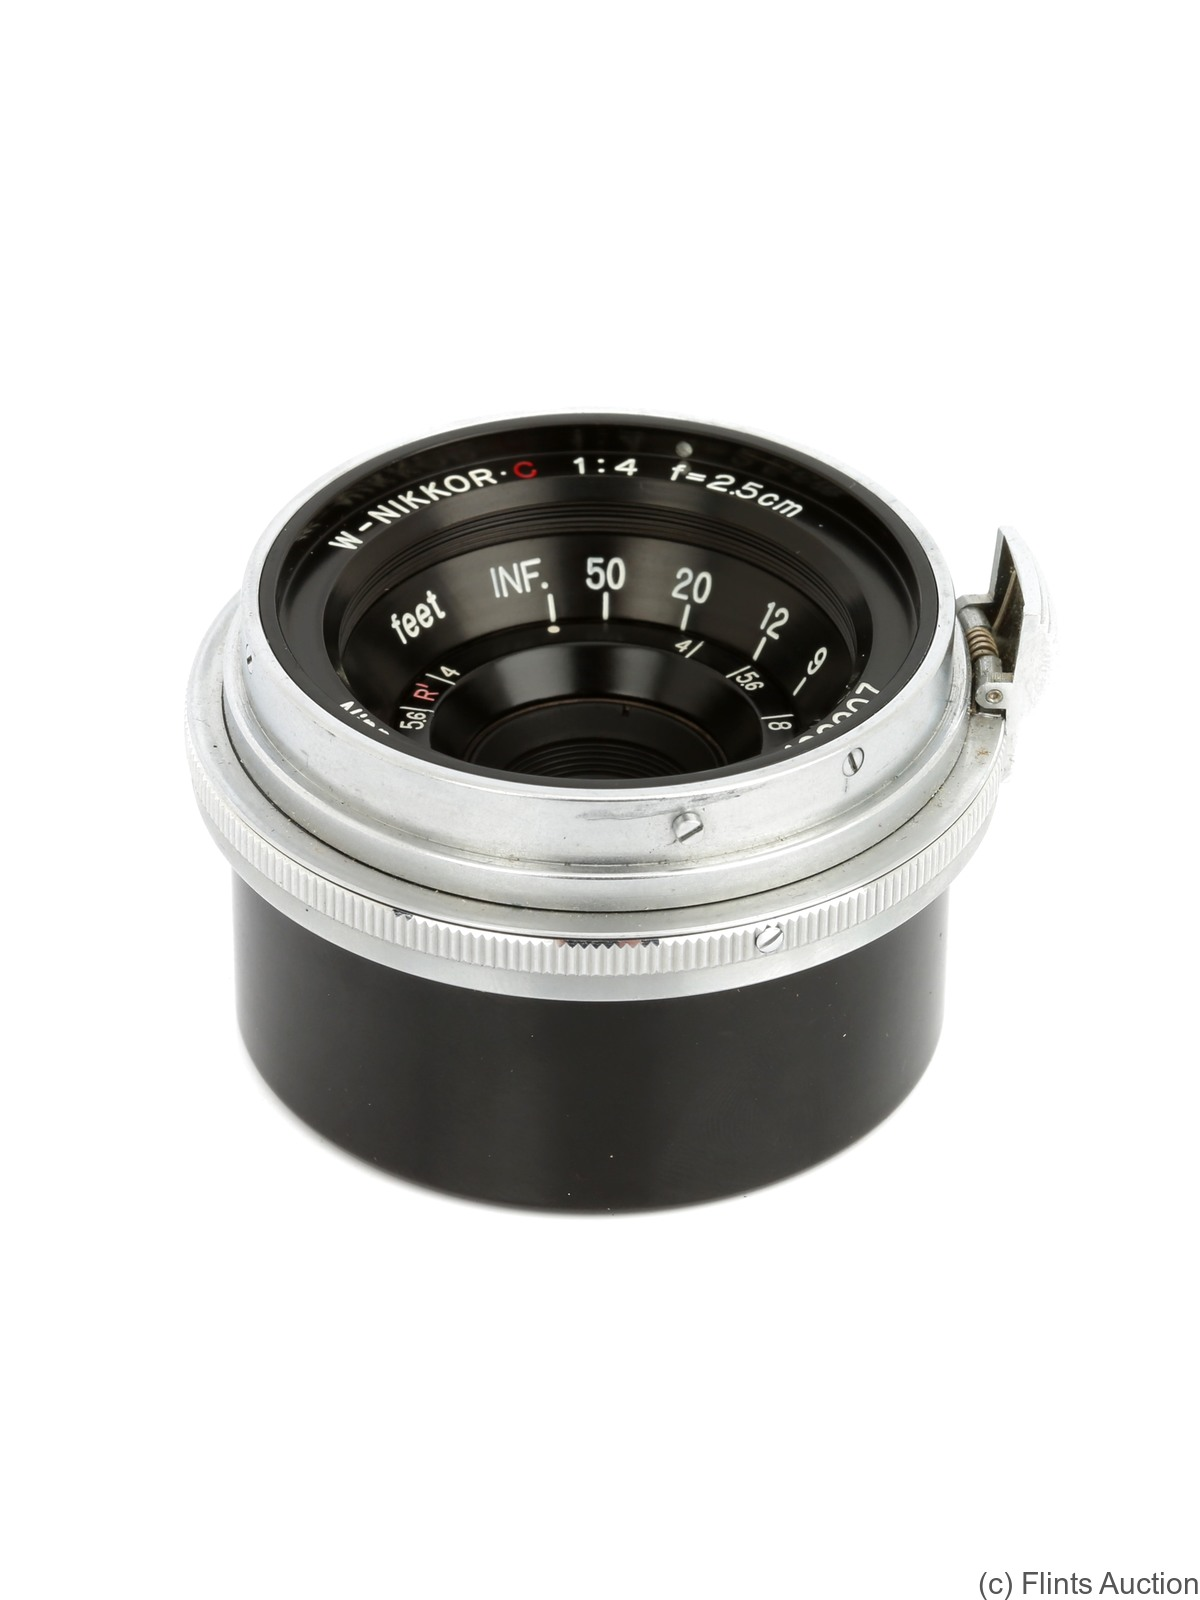 Nikon: 25mm (2.5cm) f4 W-Nikkor.C (BM) camera